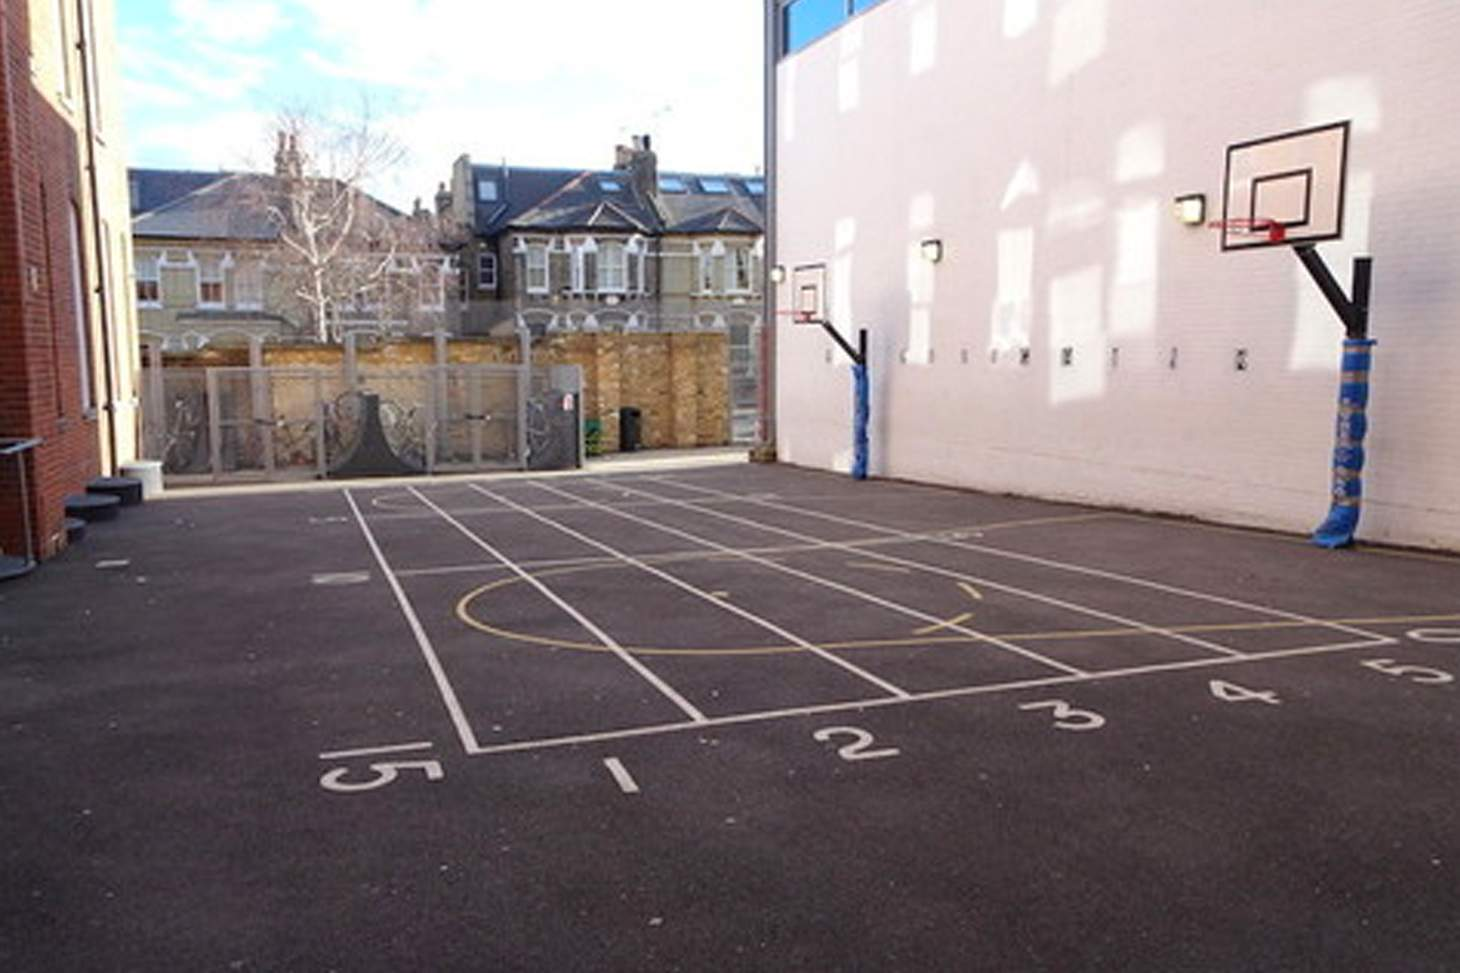 Ark Bolingbroke Academy Half court | Concrete basketball court